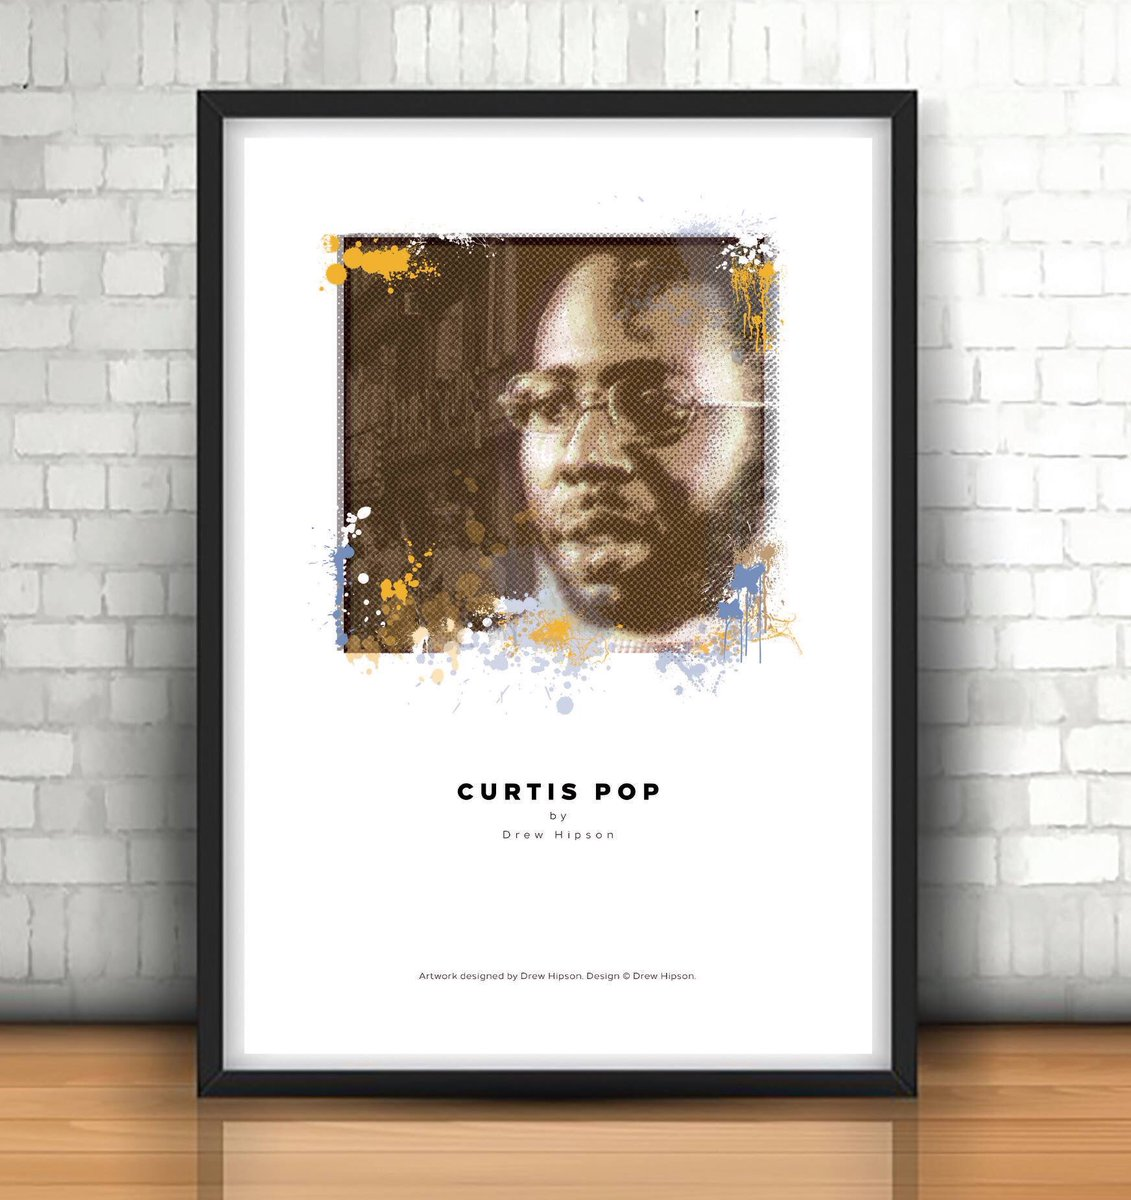 Curtis Mayfield A3 Pop Art Print. #curtismayfield @Modculture  https:// paulwellermagazine.bigcartel.com/product/curtis -mayfield-a3-pop-art-print &nbsp; …  <br>http://pic.twitter.com/O3lMCekNZV